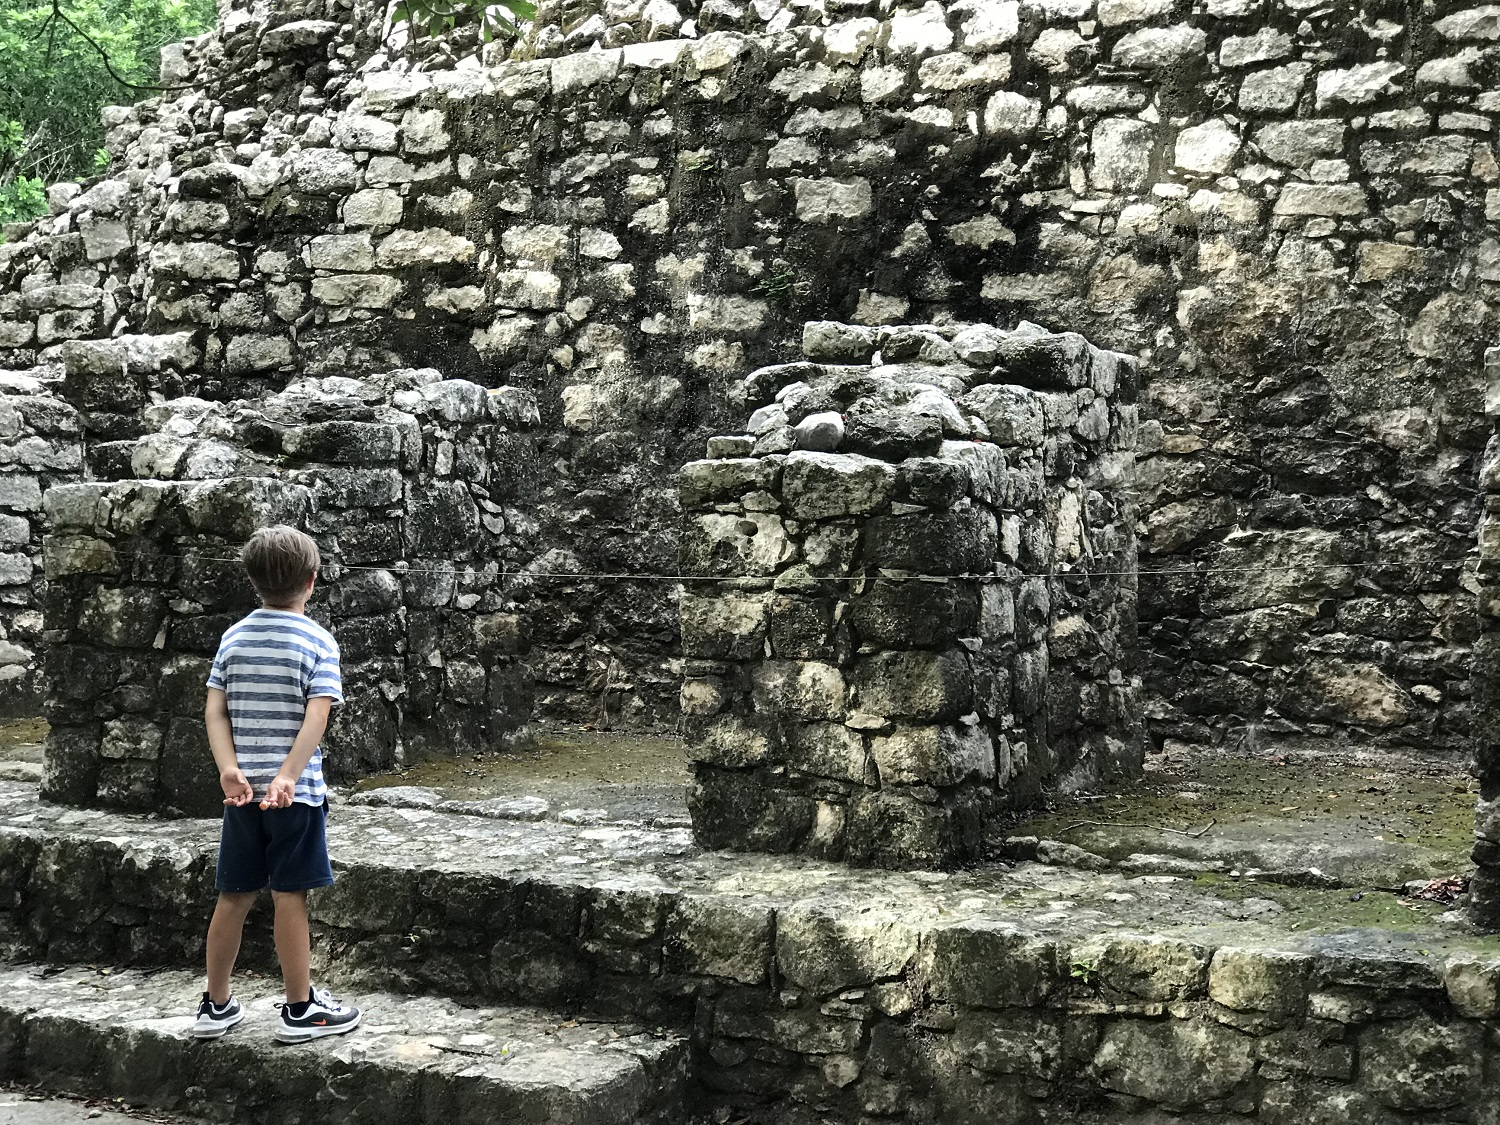 Kids Love Travel: rondreis door Mexico met kinderen